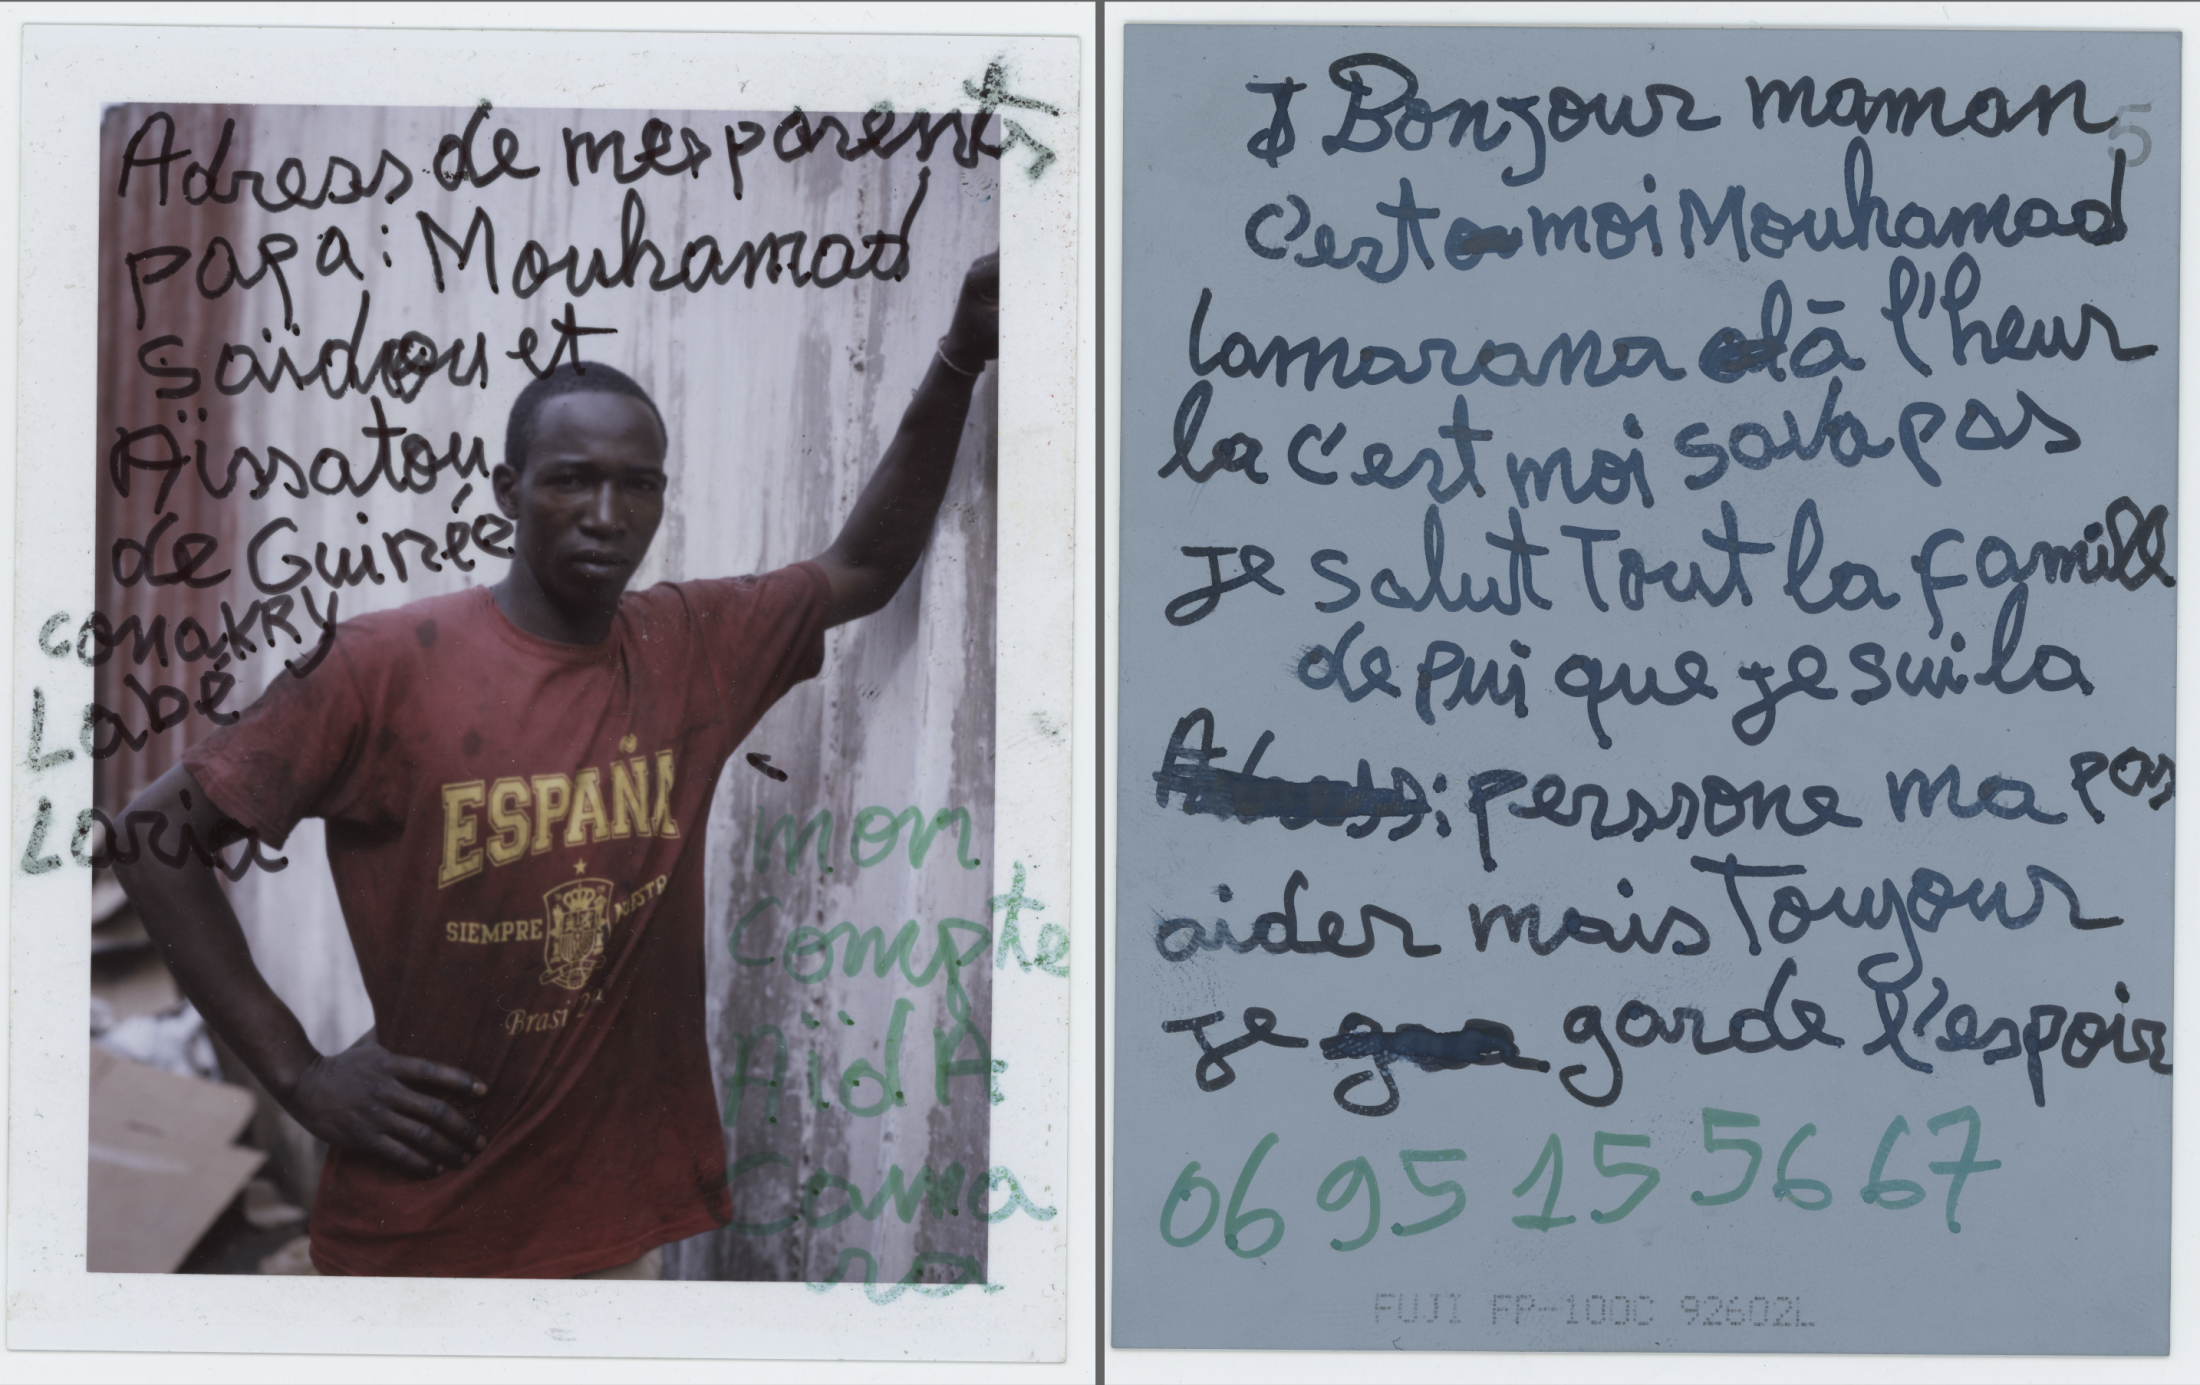 My parent's address Dad: Mouhamad SaMouhamad  Saïdou y Aïssatou from Guinea Conakry Labé Laria  My Account  Aïda Comarana Good Morning Mom, it's me,  Mouhamad Camarana. Now I'm not good. Say hi to everyone for me, nobody help me here but I keep my strenght and hope